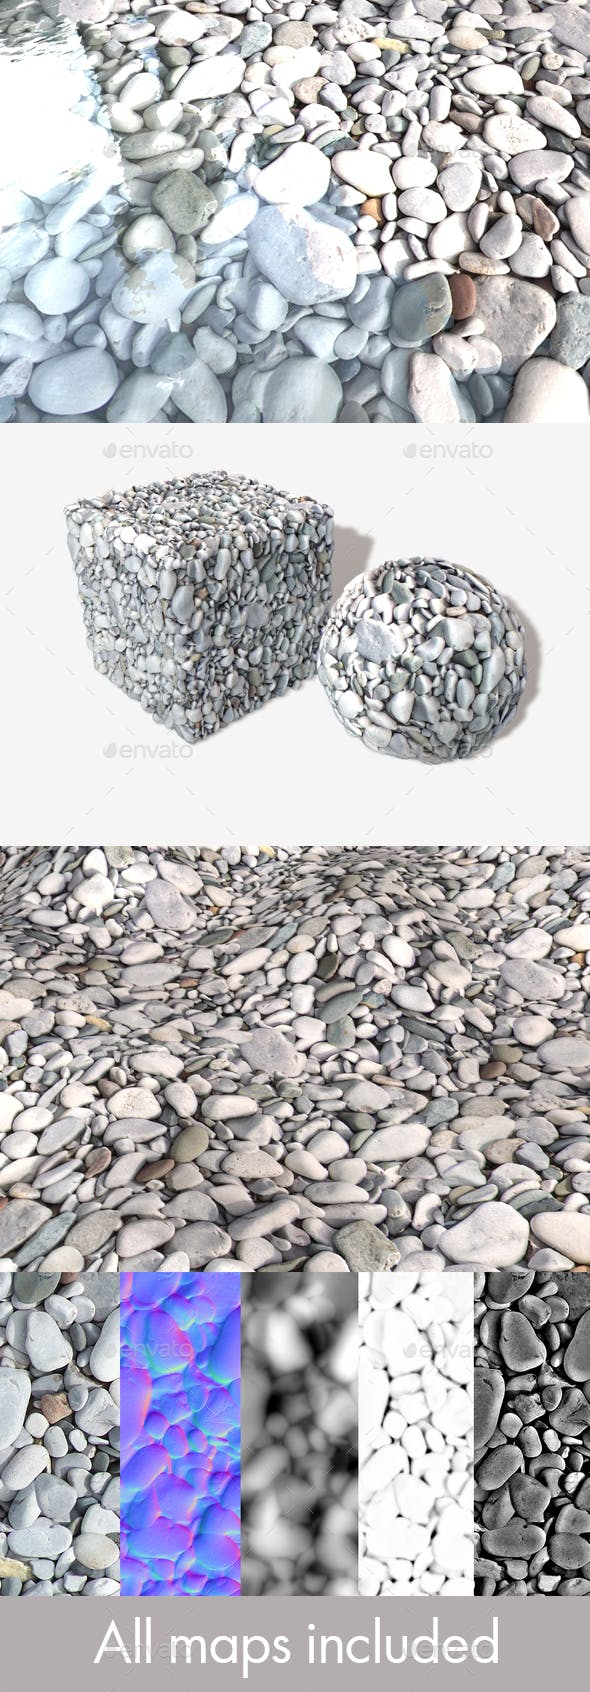 Stones Seamless Texture - 3DOcean Item for Sale